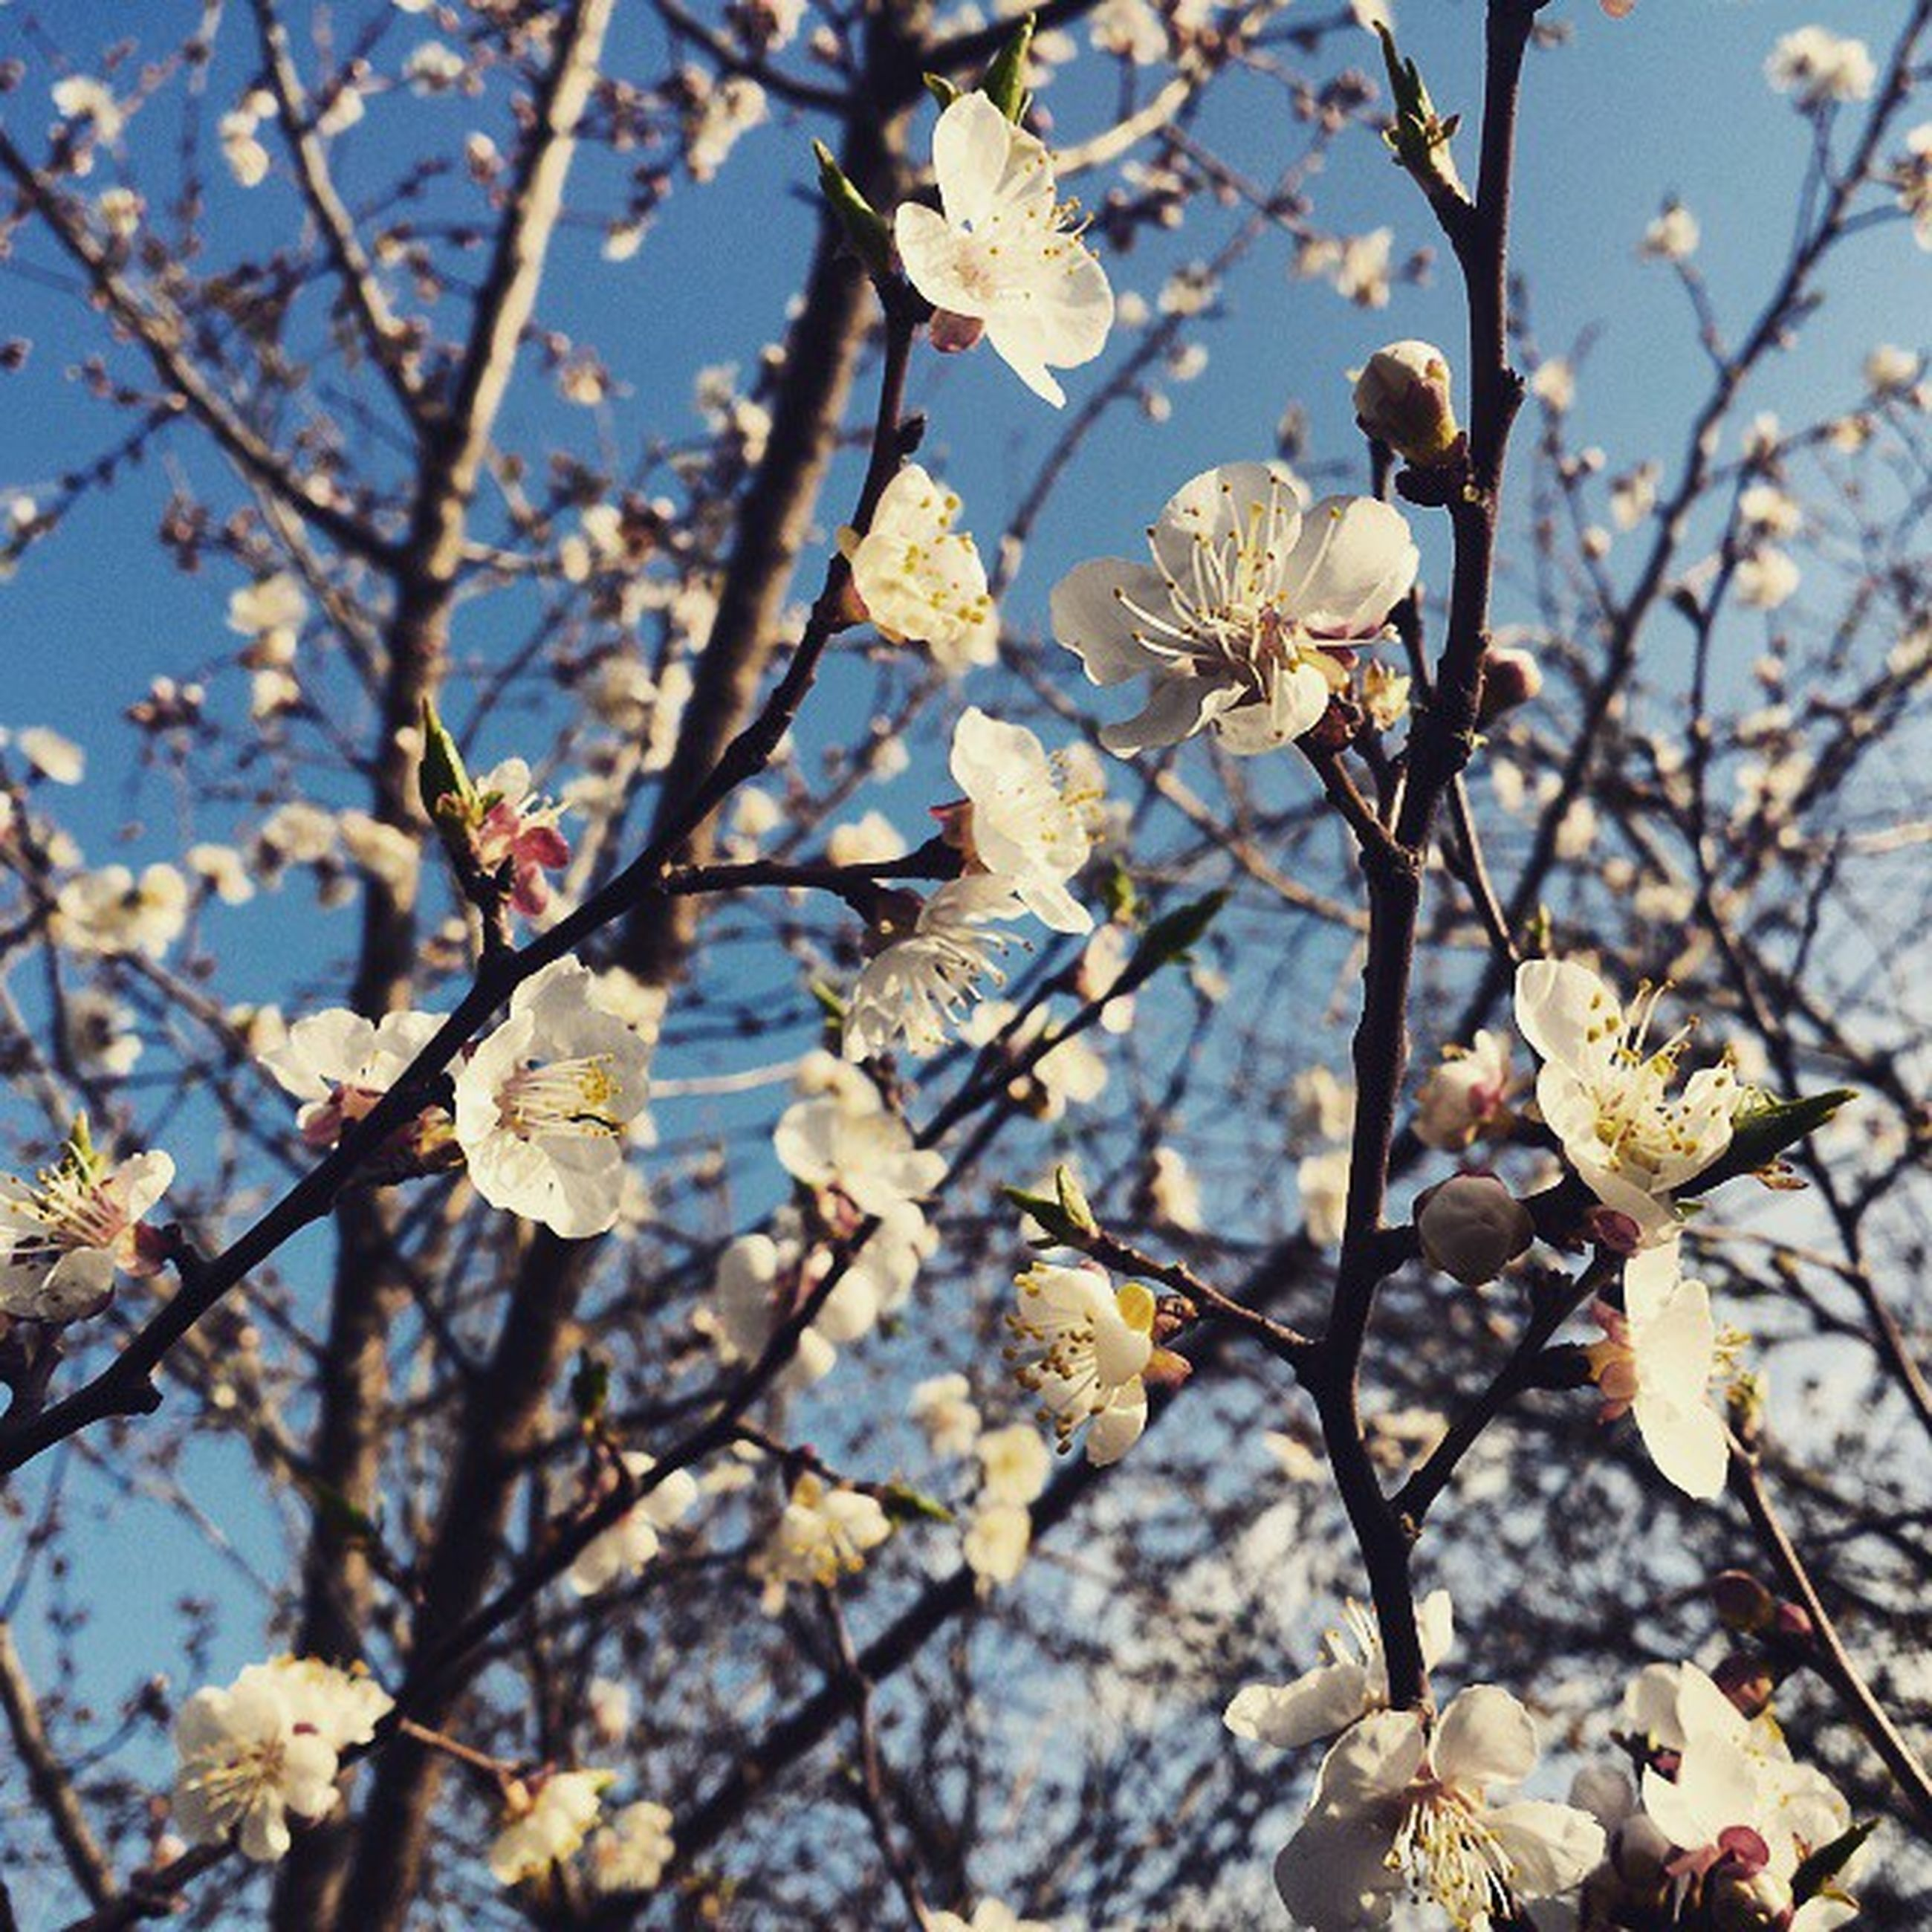 branch, flower, tree, growth, freshness, nature, blossom, beauty in nature, fragility, cherry blossom, twig, cherry tree, low angle view, springtime, season, leaf, focus on foreground, day, in bloom, close-up